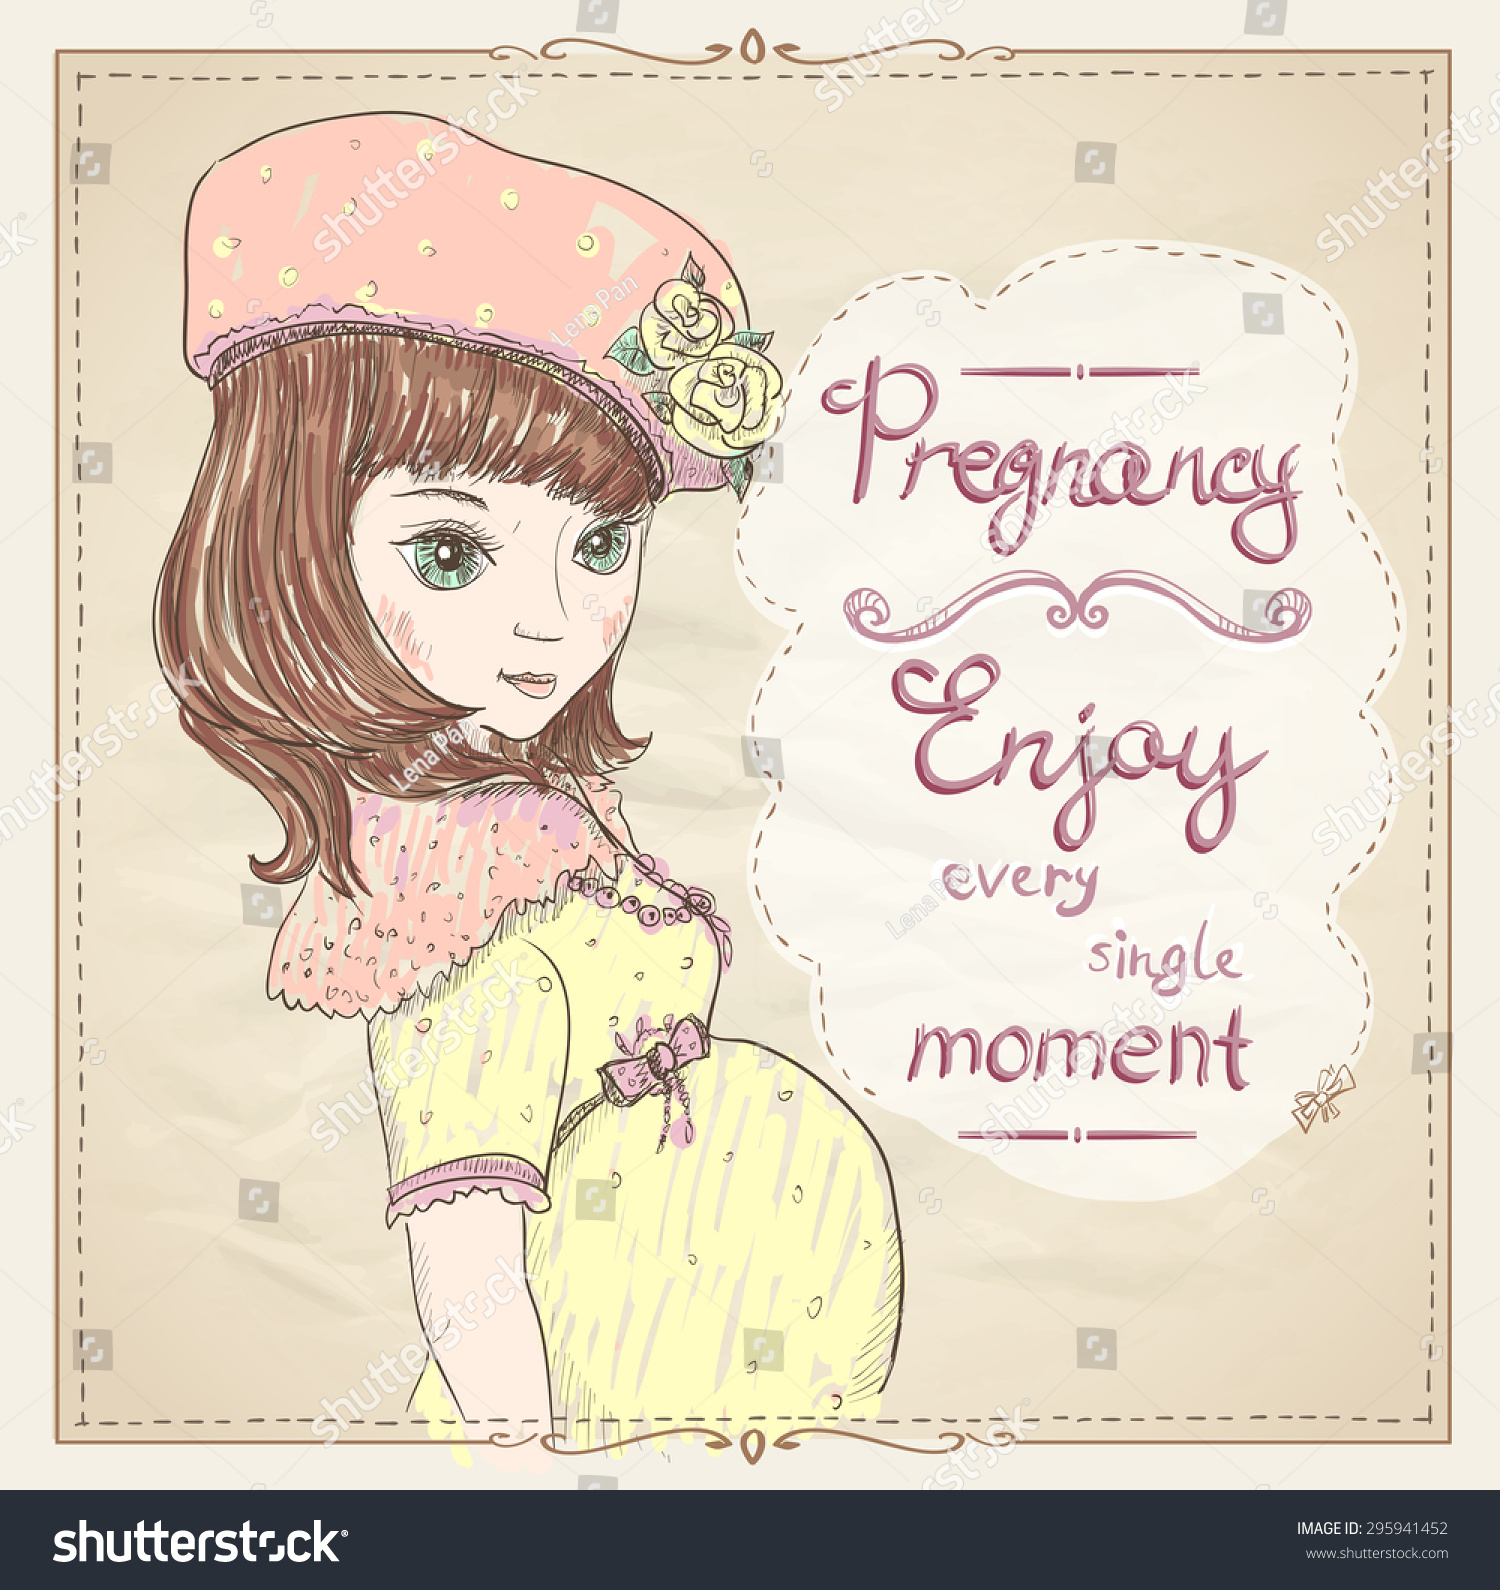 Pregnancy Quotes Card Enjoy Every Single Stock Vector Royalty Free 295941452